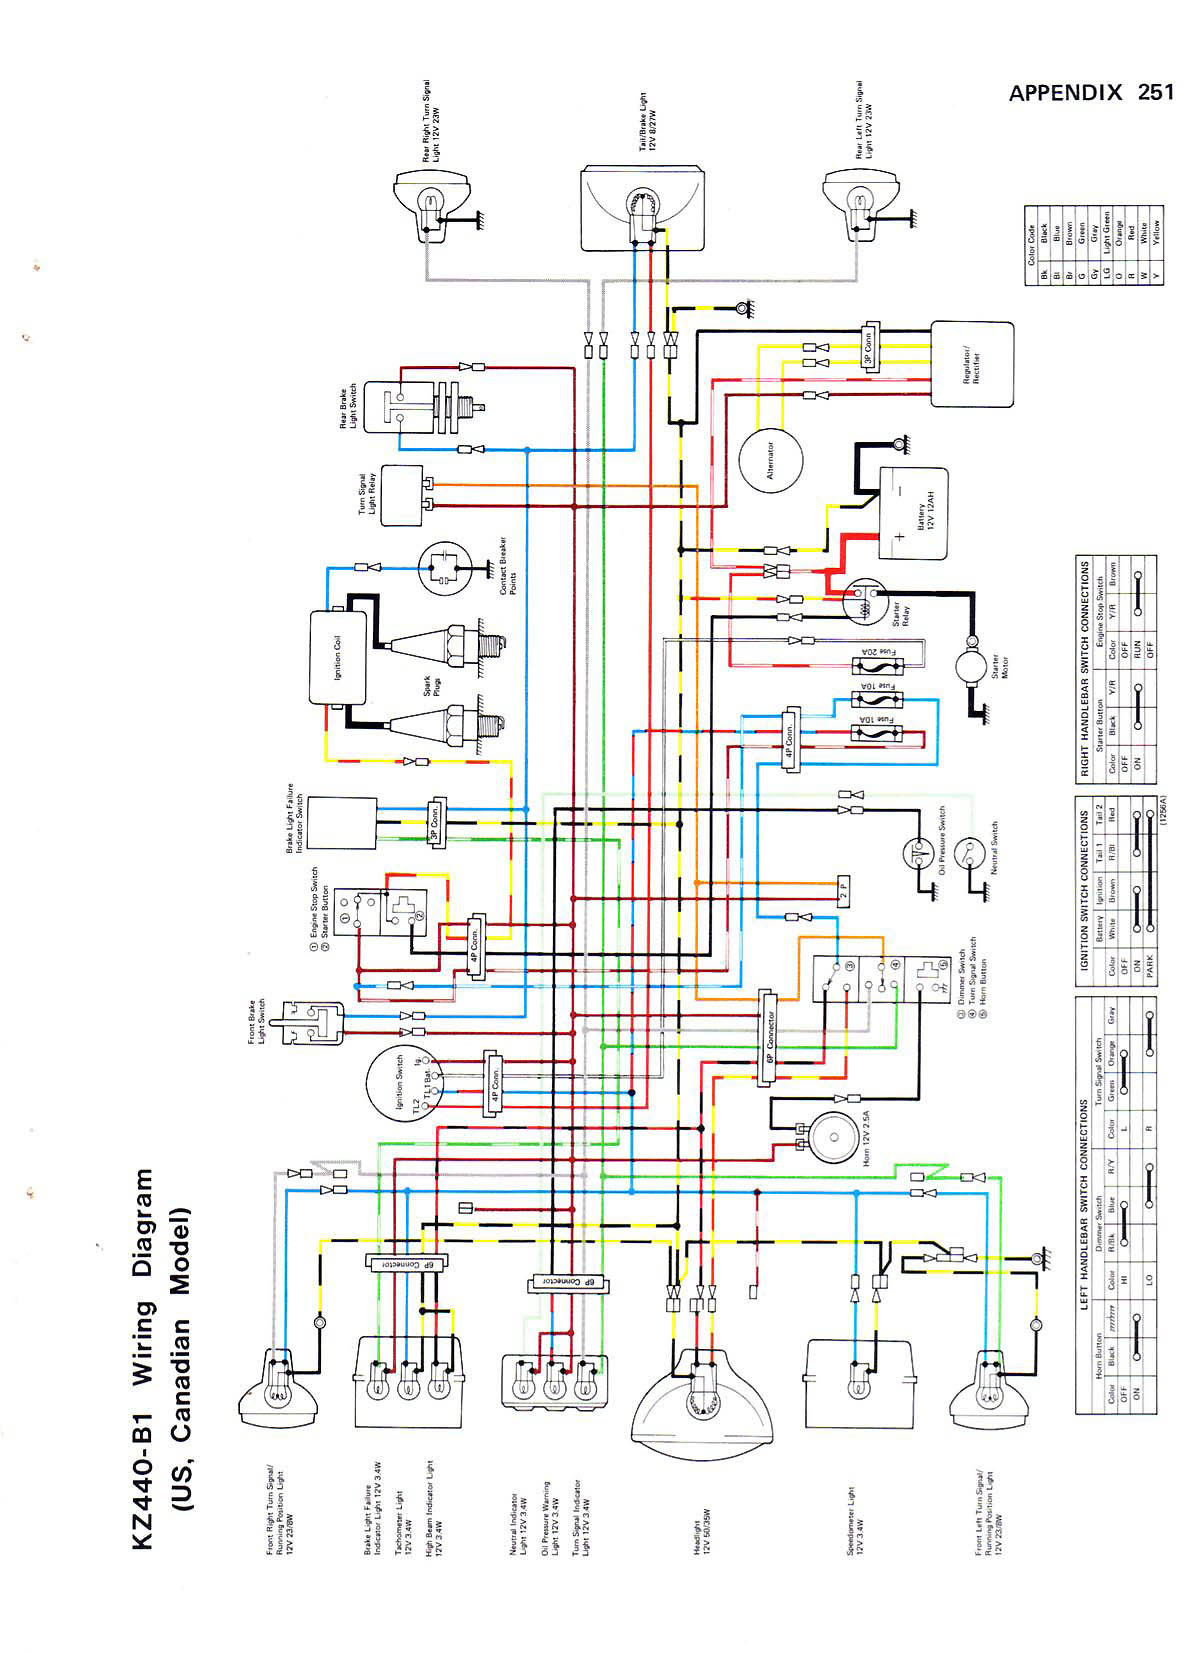 1982 Kawasaki Wiring Diagrams Wiring Diagrams Name Name Miglioribanche It